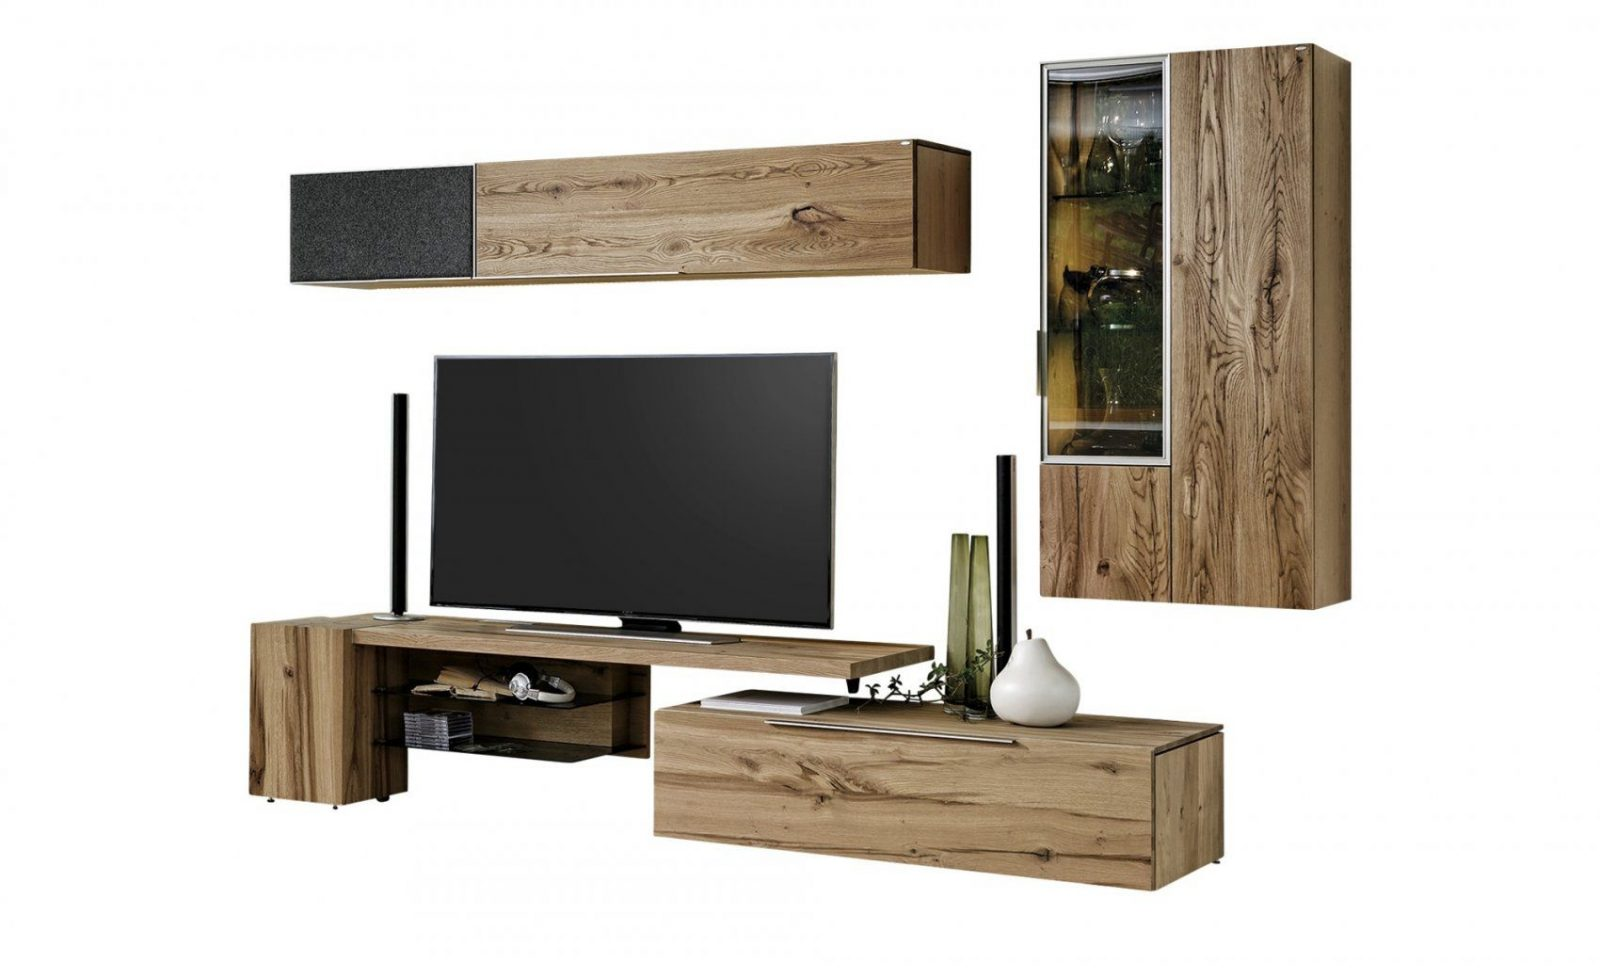 voglauer v alpin abverkauf haus design ideen. Black Bedroom Furniture Sets. Home Design Ideas